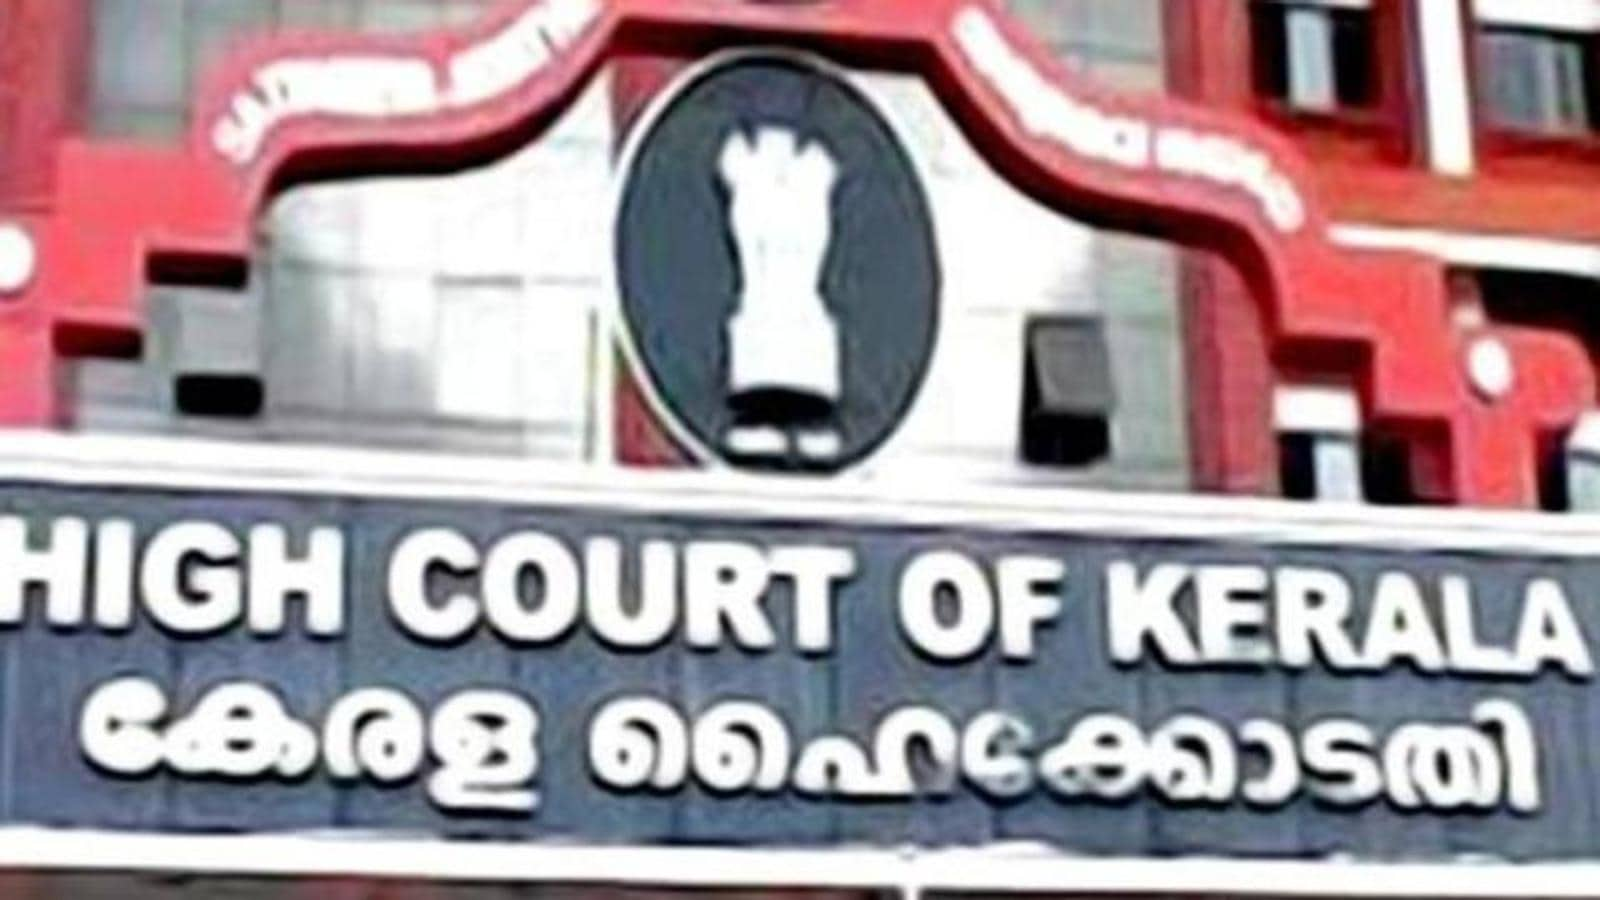 6 women HC judges in Kerala for first time